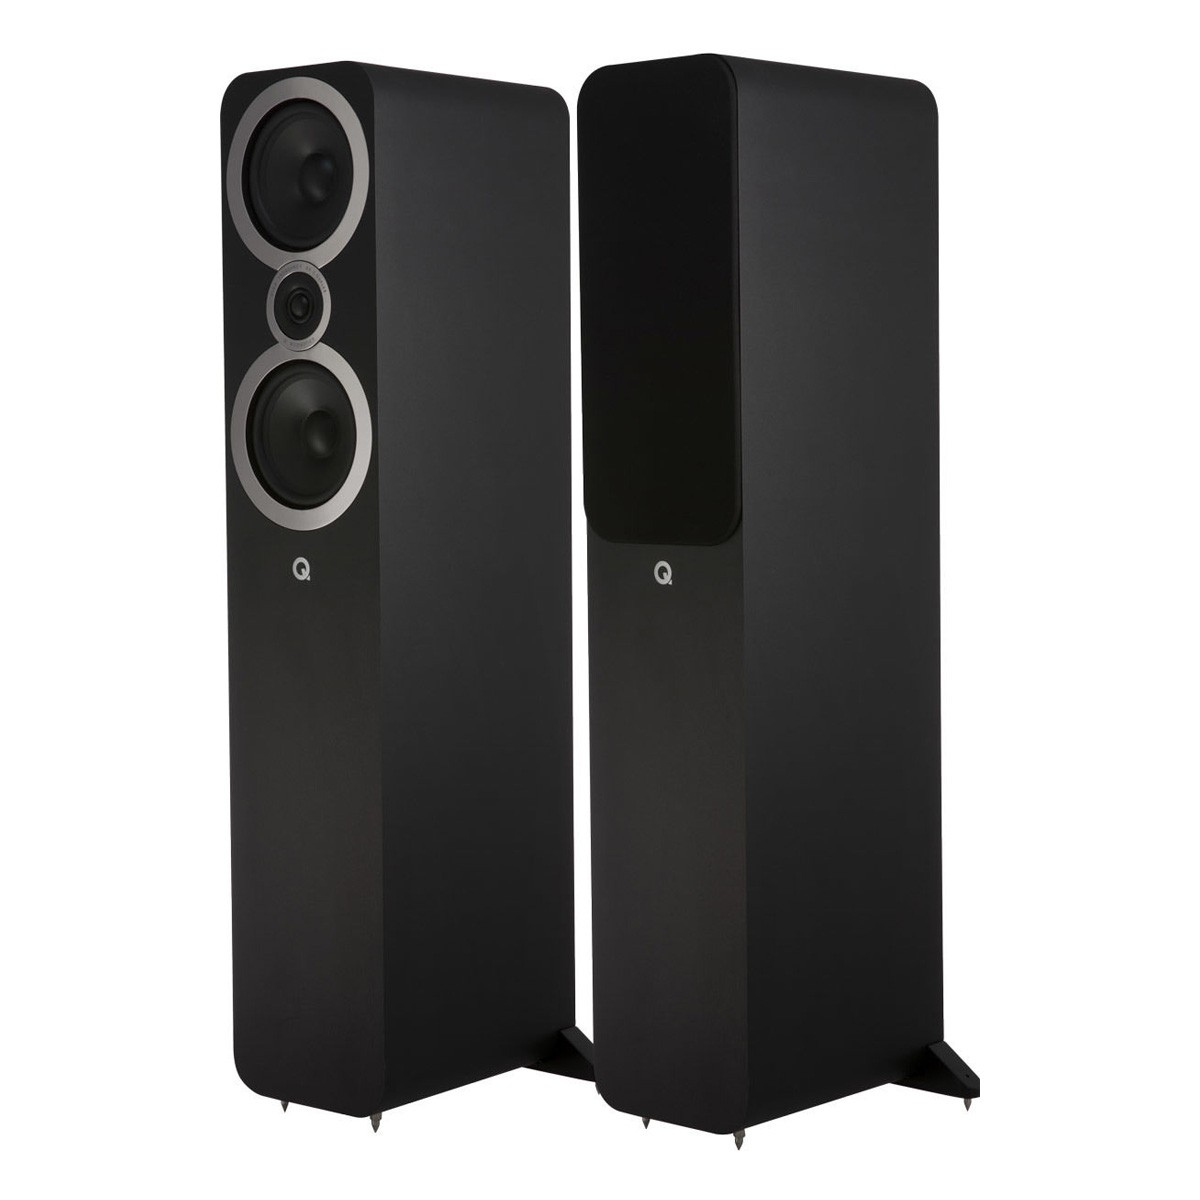 Q ACOUSTICS 3050i Floorstanding Speakers 44Hz - 30kHz 91dB Matte Black (Pair)